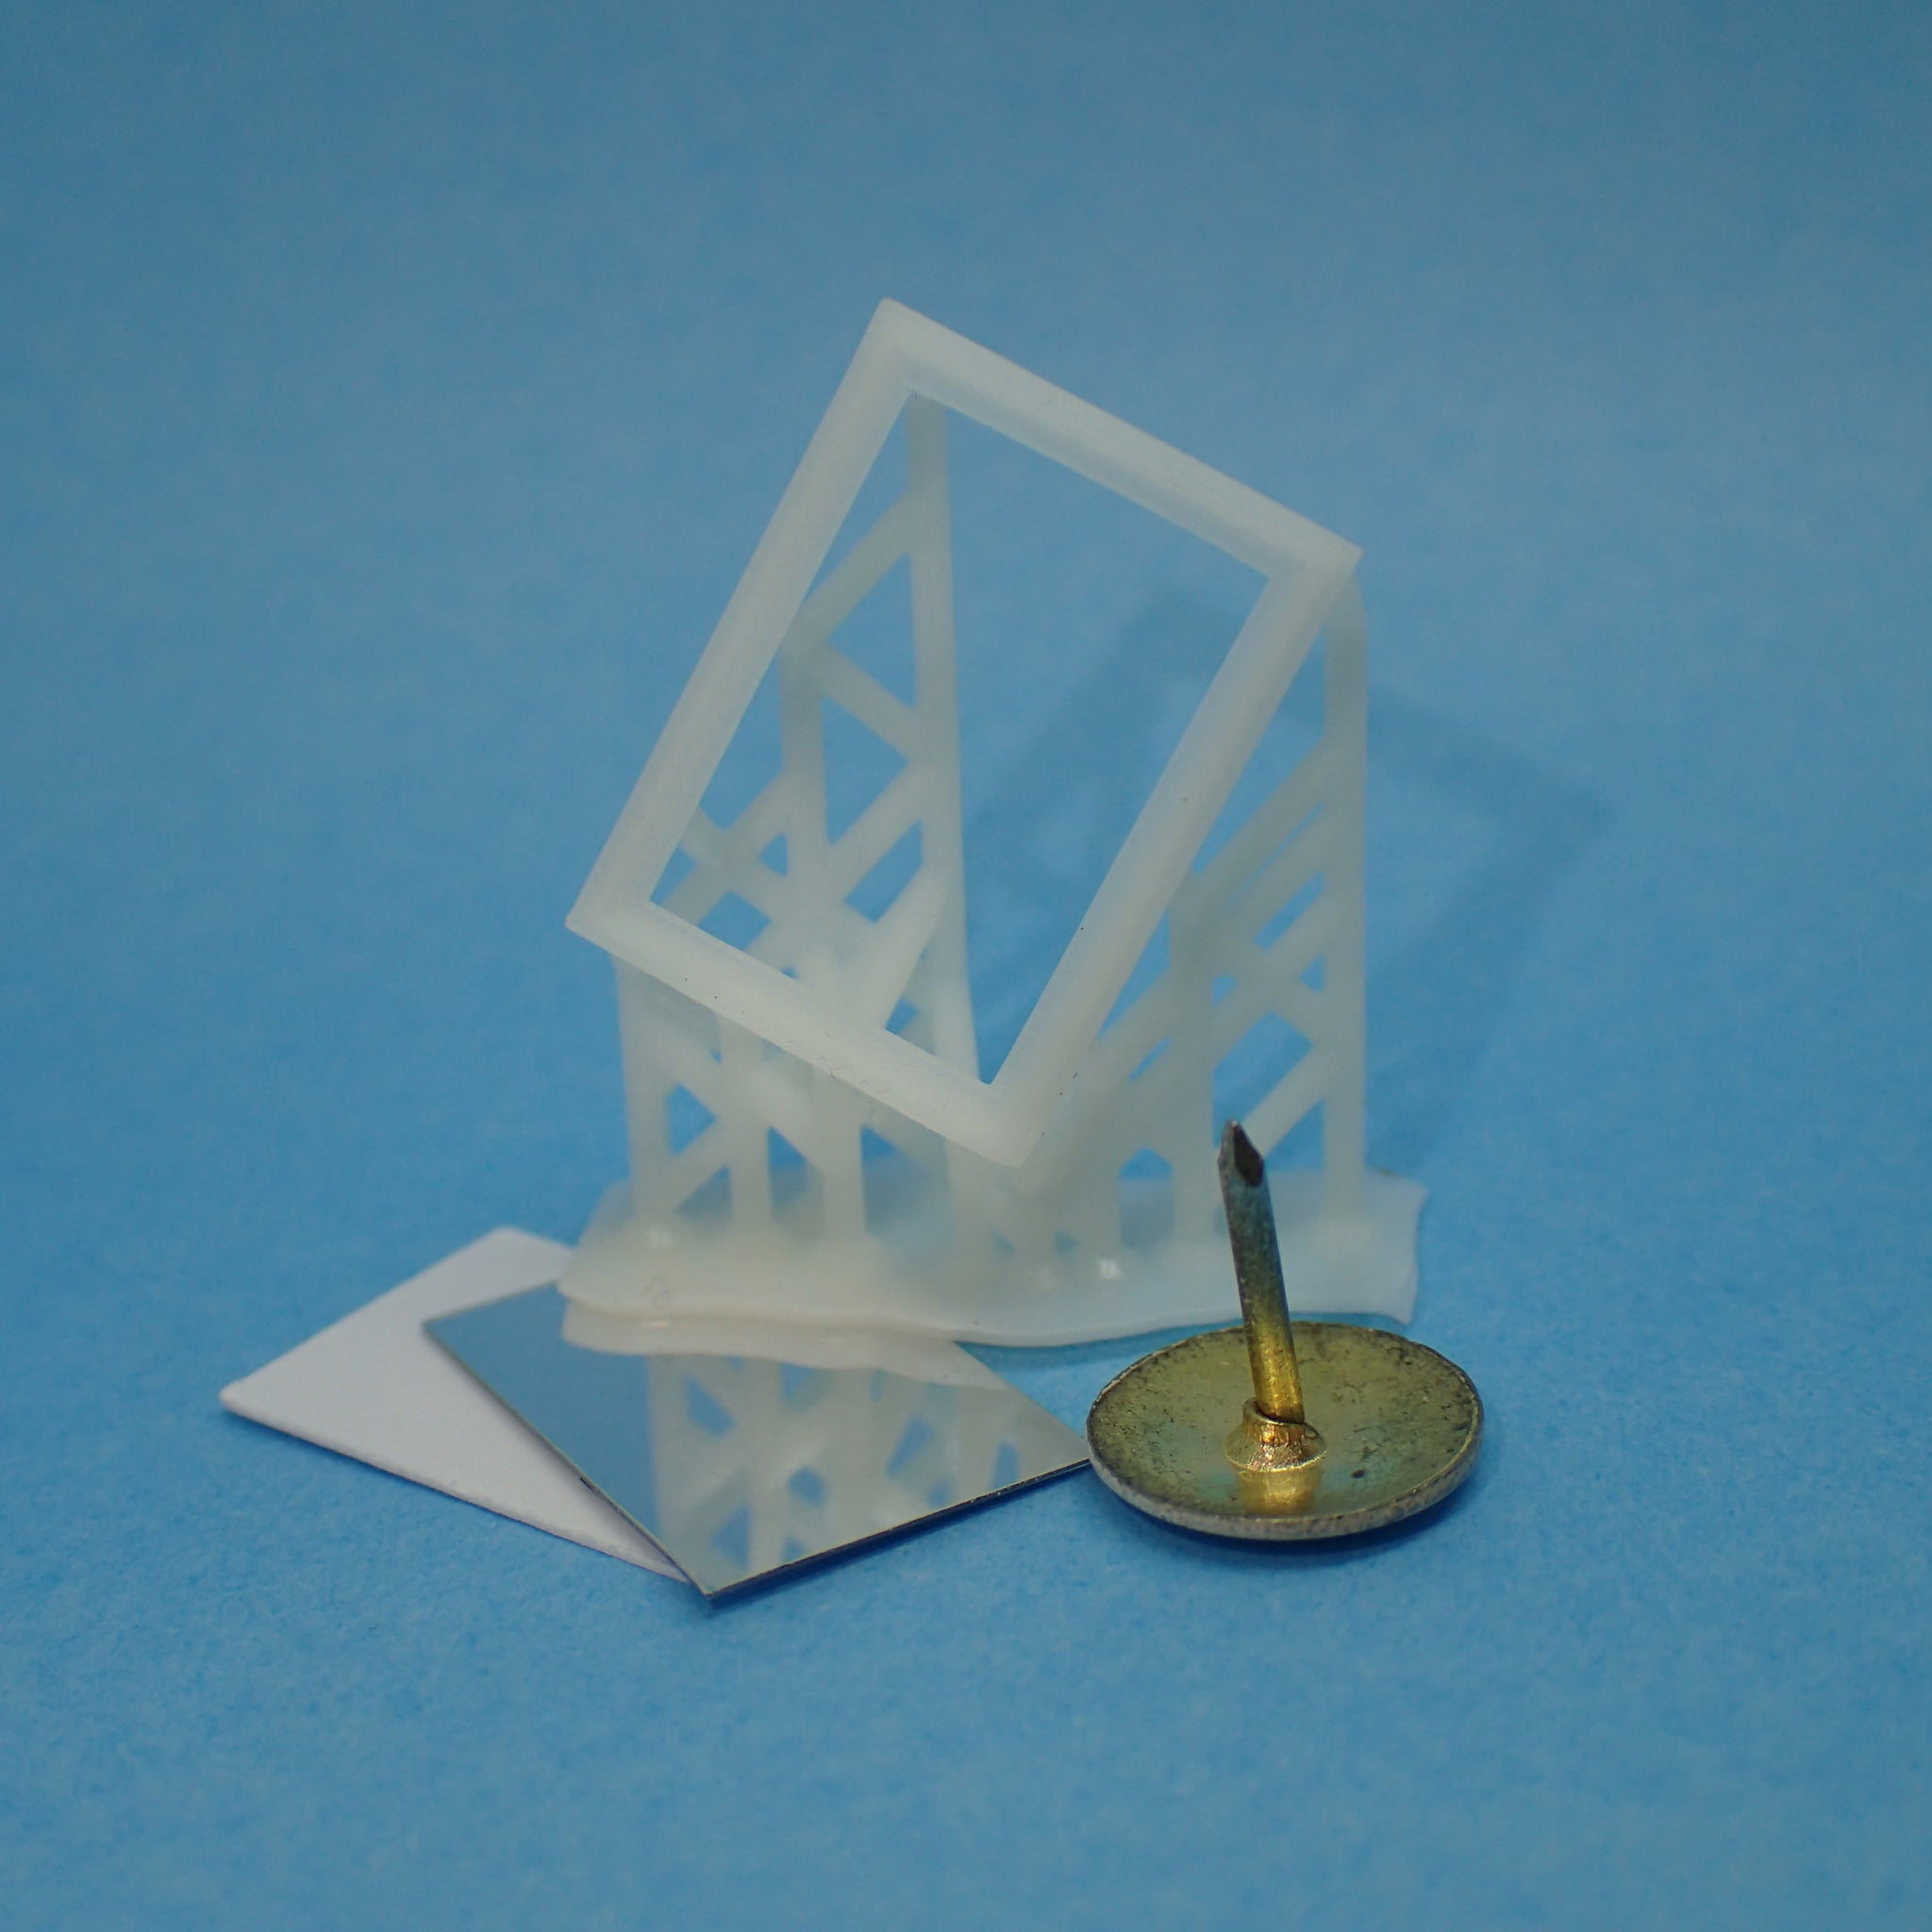 Rectangular mirror, 1/48th scale